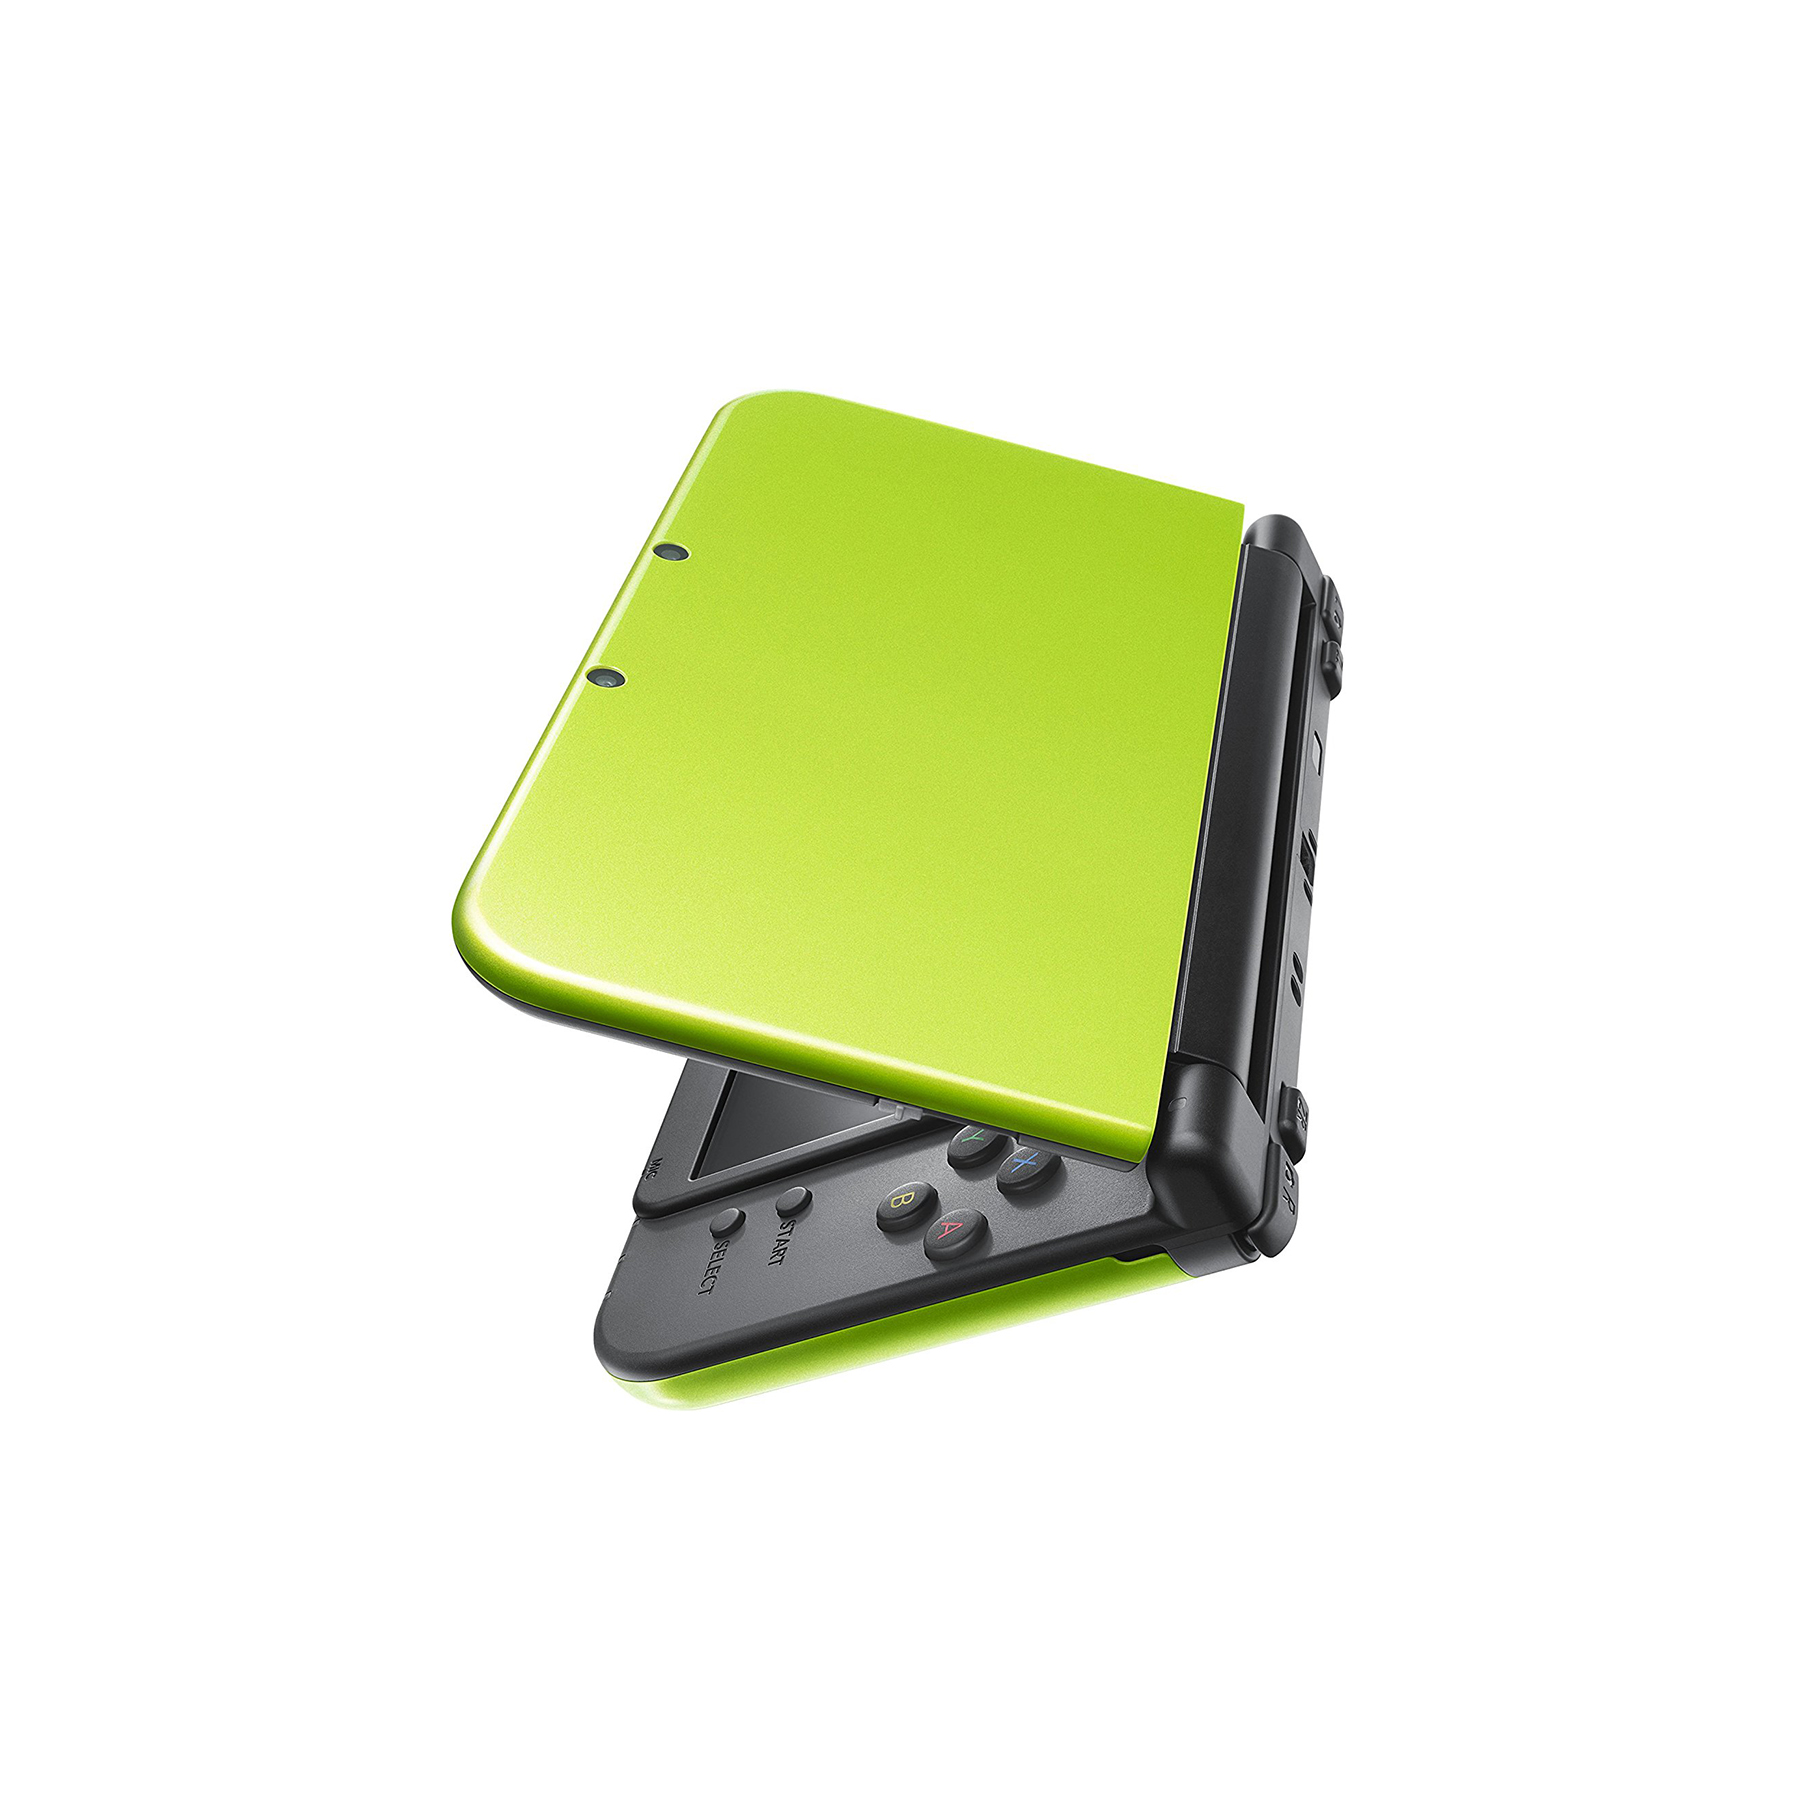 Nintendo New 3DS XL Special Edition